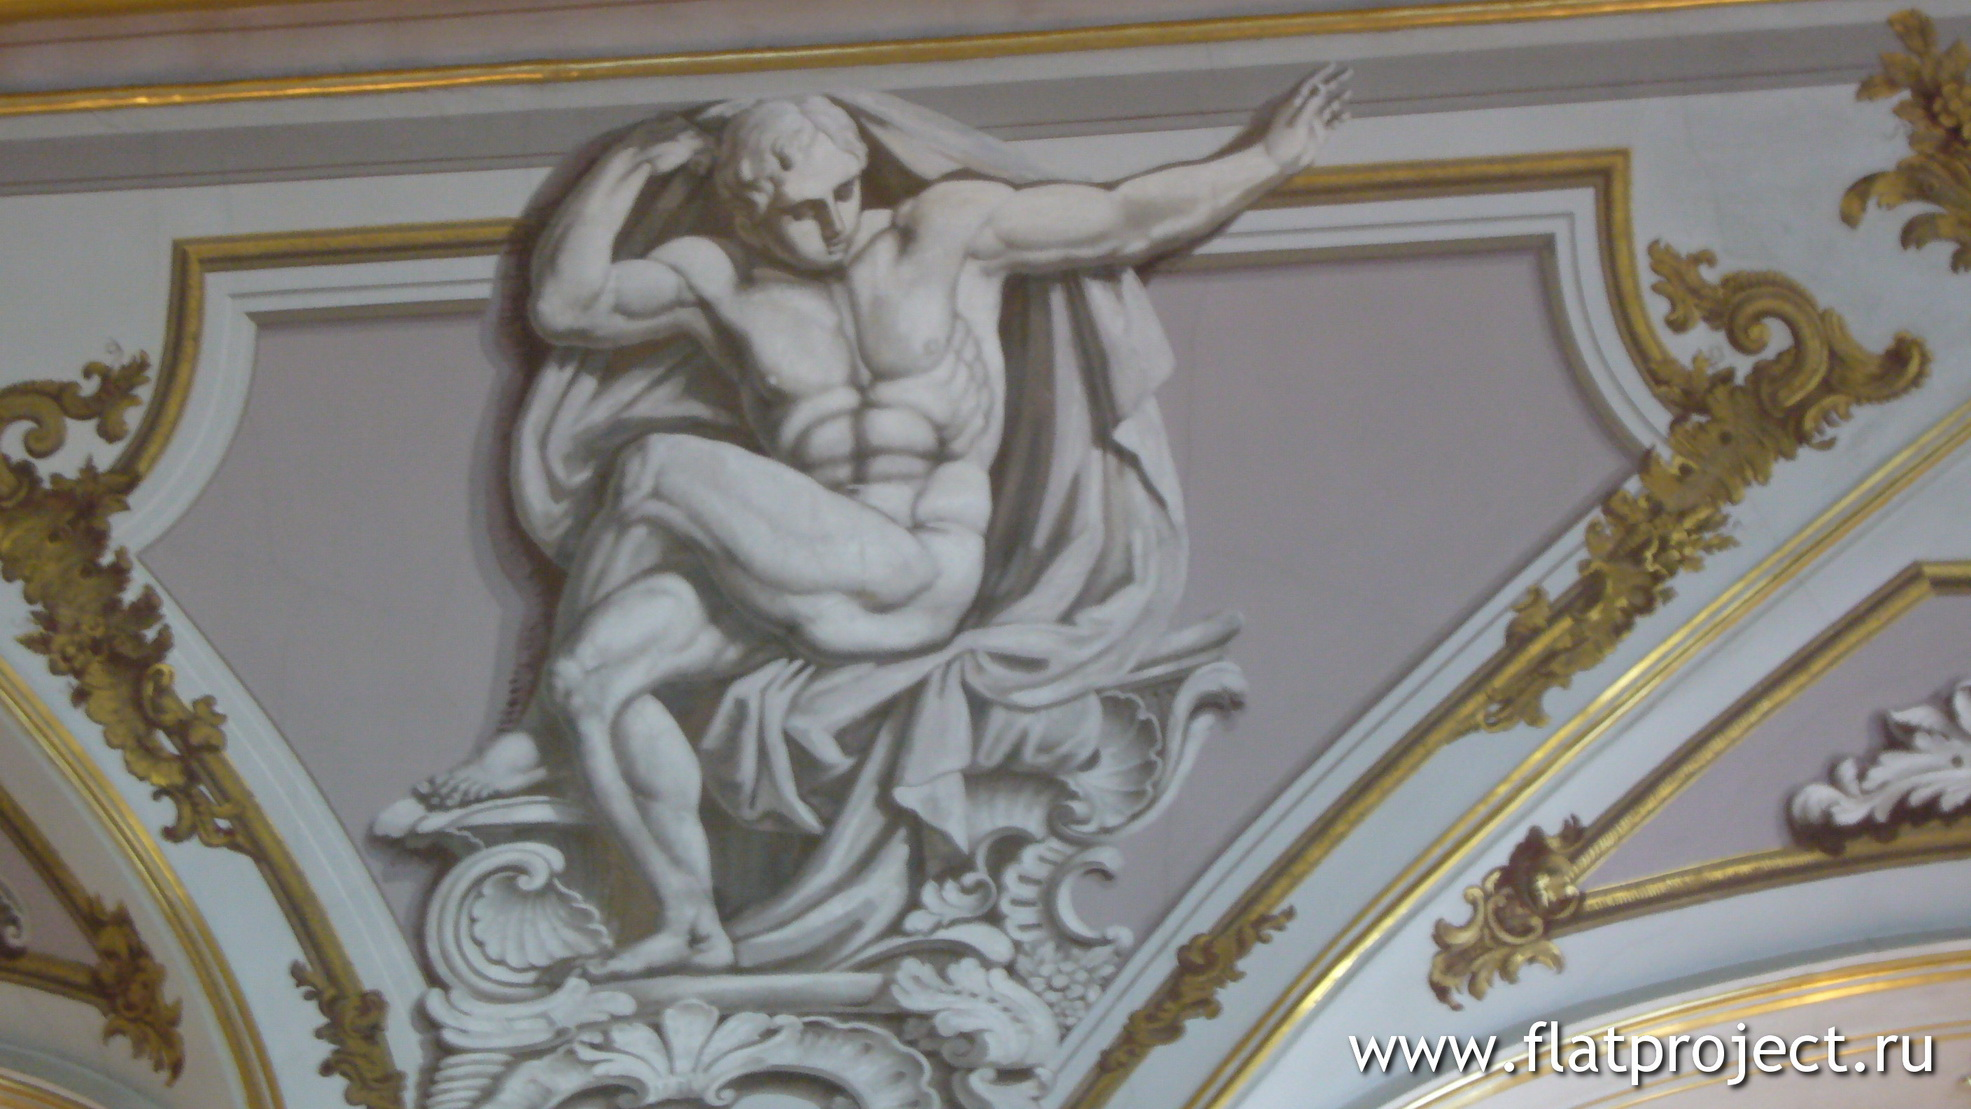 The State Hermitage museum interiors – photo 93